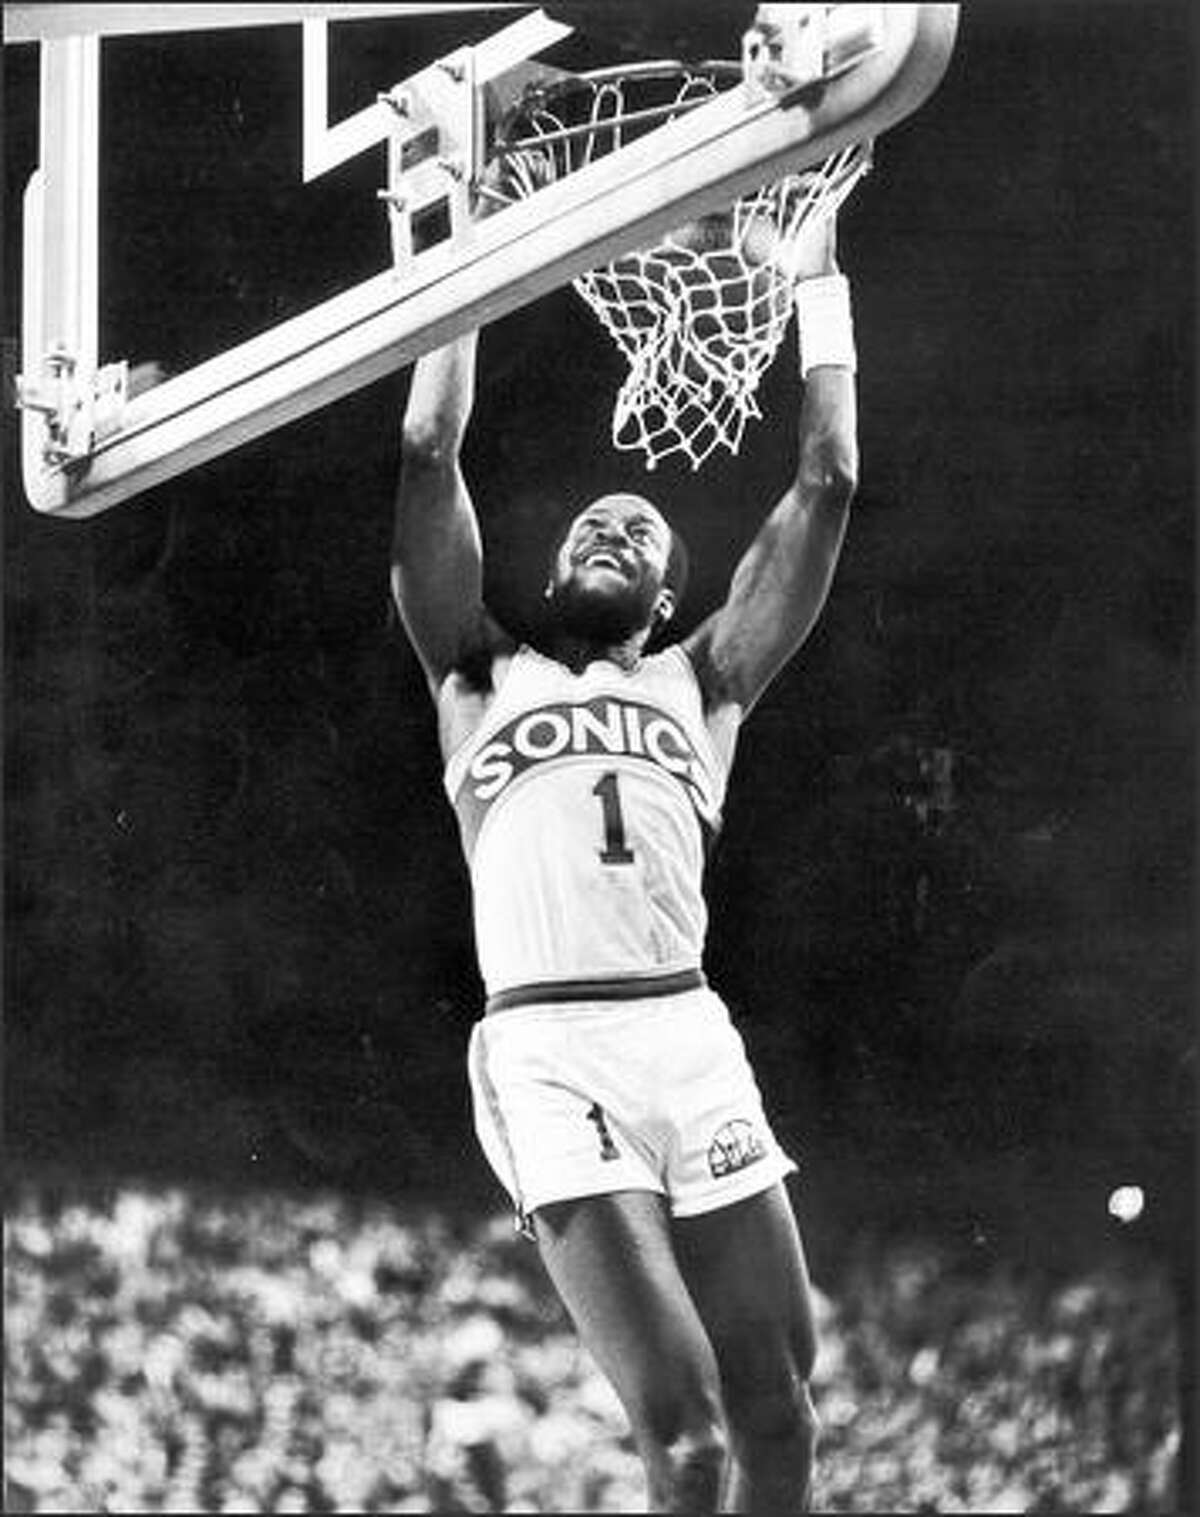 Gus Williams averaged 26.6 points per game on 47 percent shooting during Sonics' 1979 playoff games.